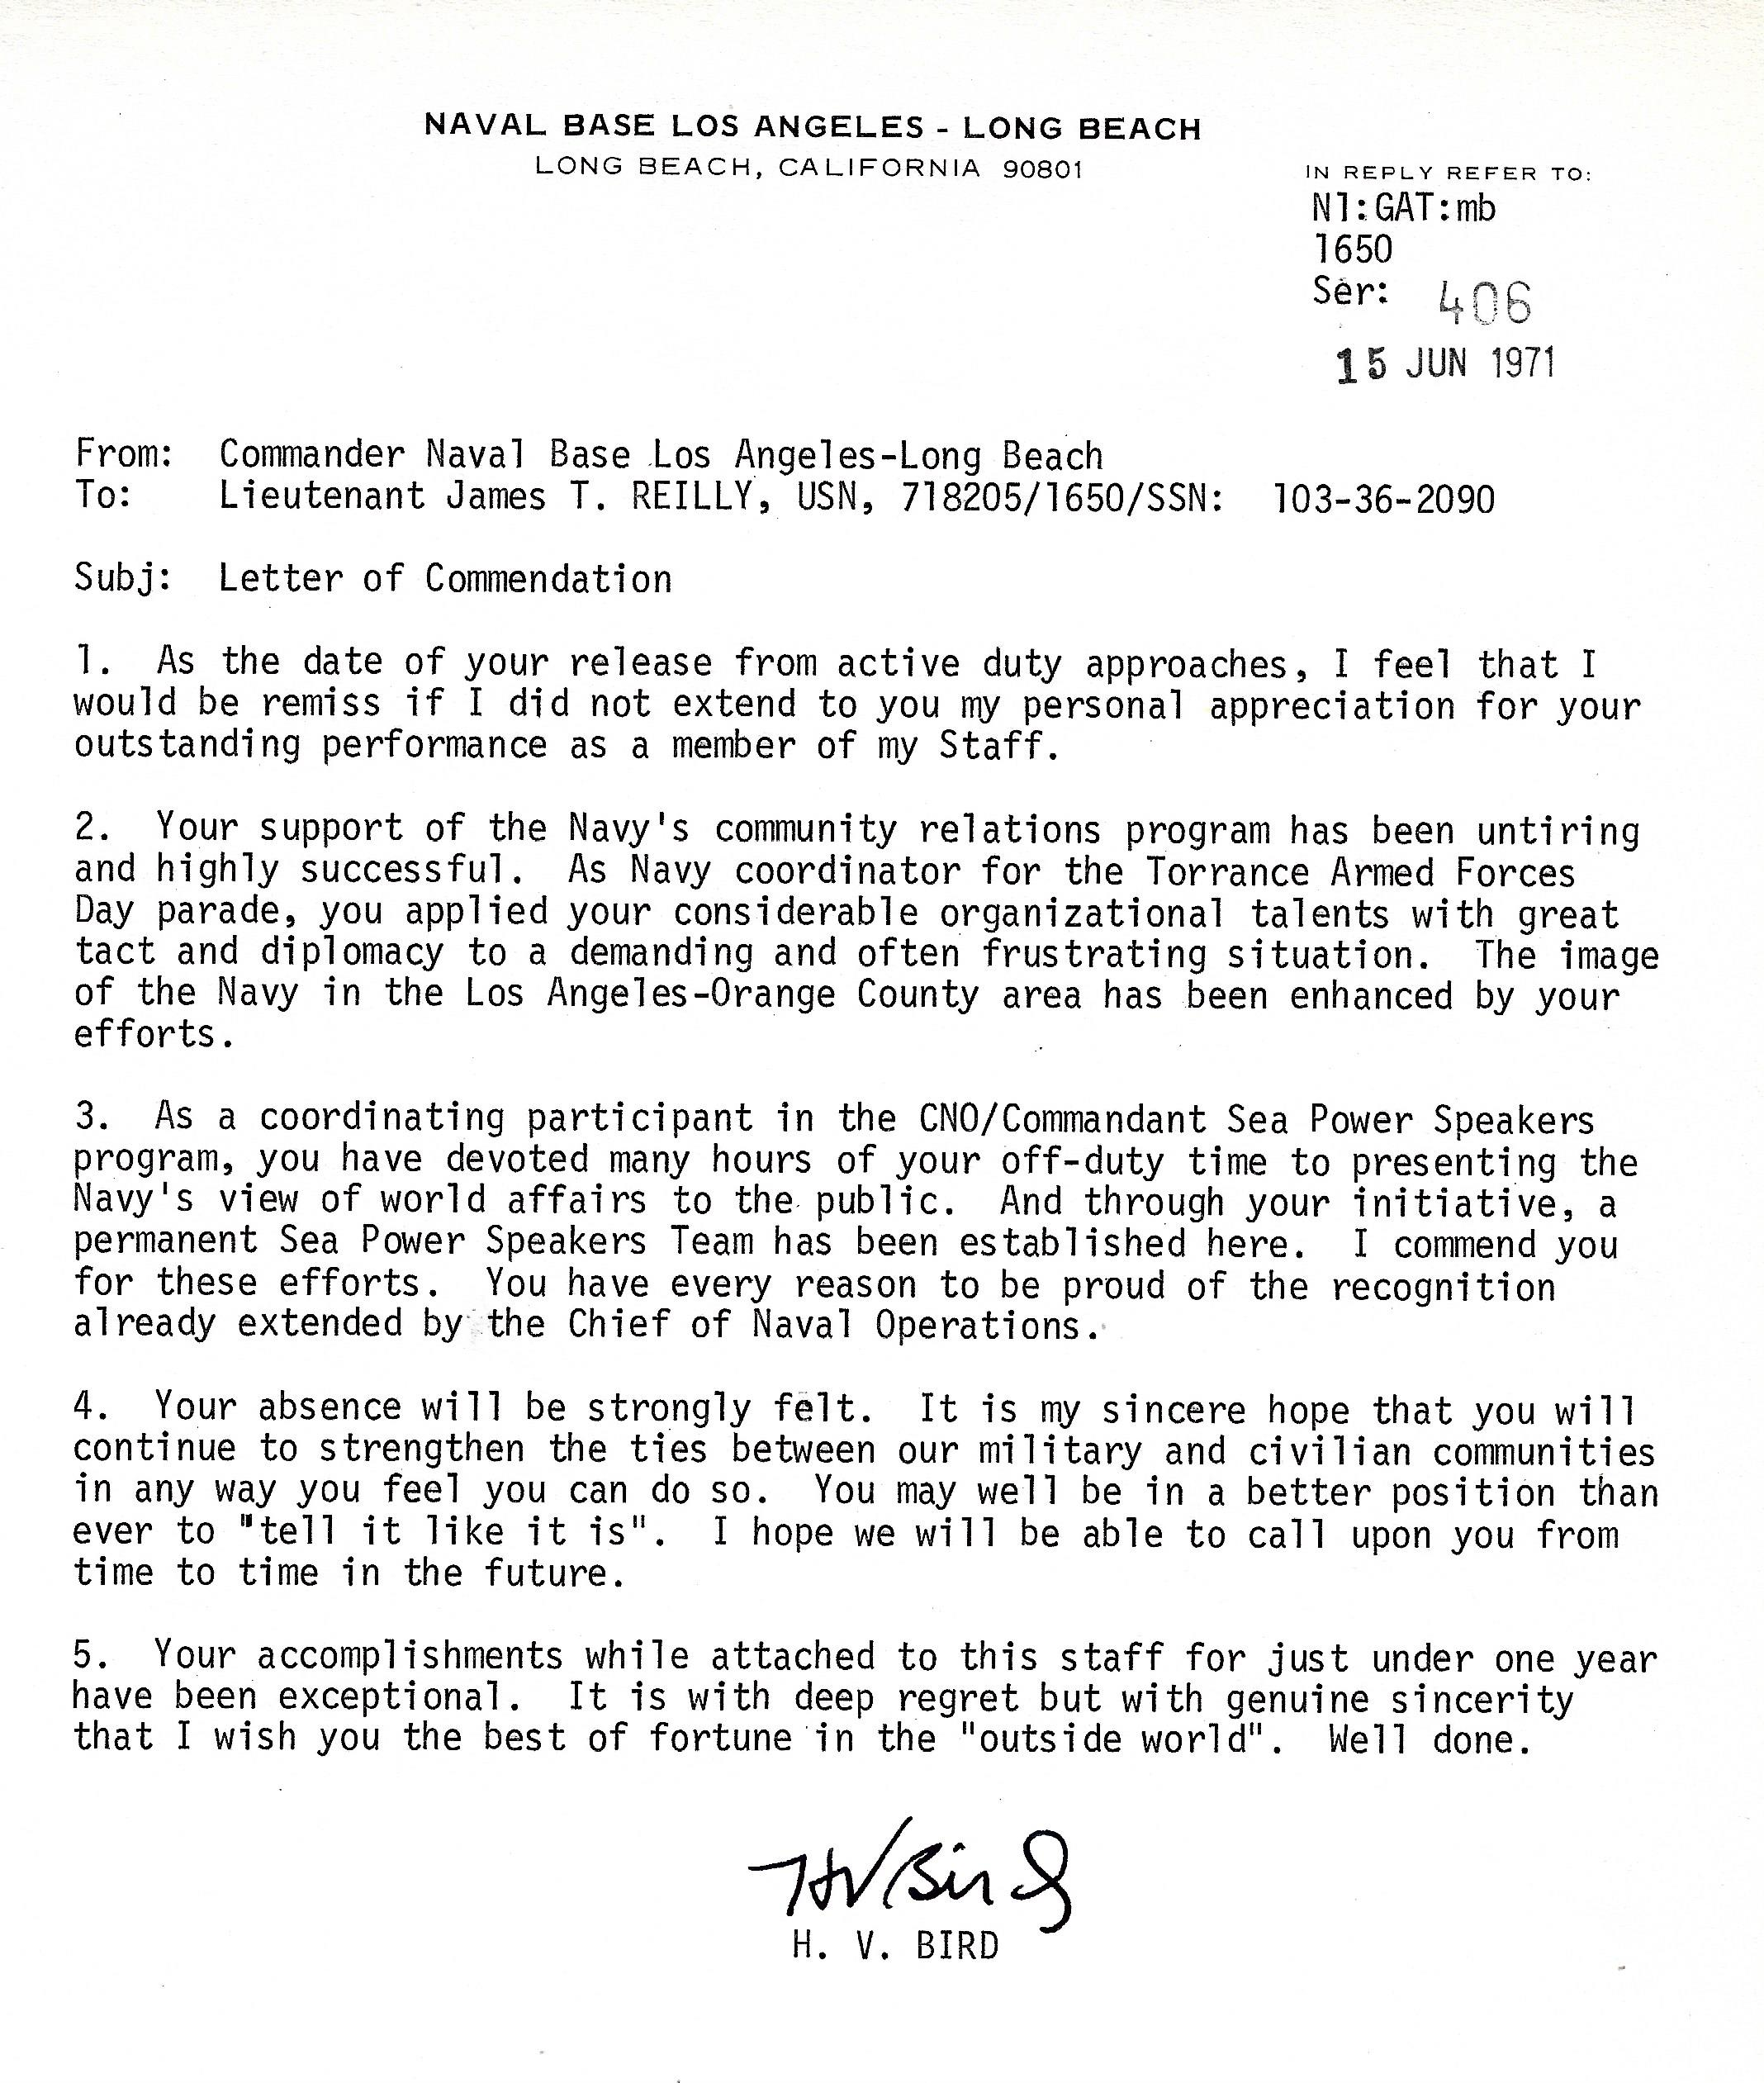 Naval Base Los Angeles - Long Beach Rear Admiral H. V. Bird Letter of Commendation 710615